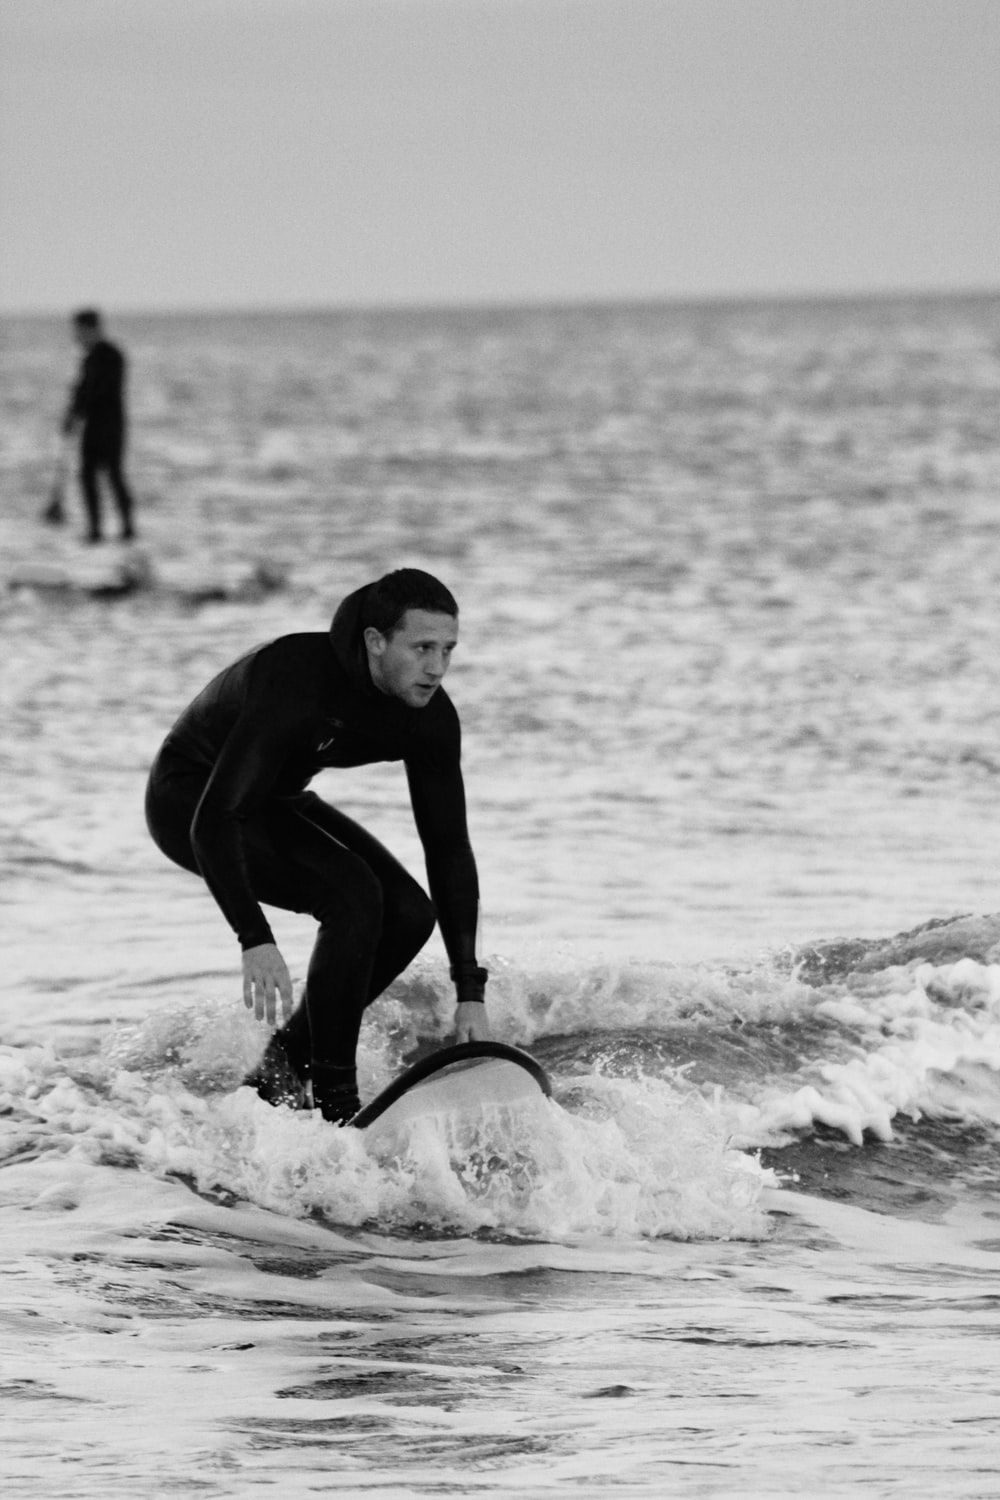 man in black wet suit riding on surfboard on beach during daytime